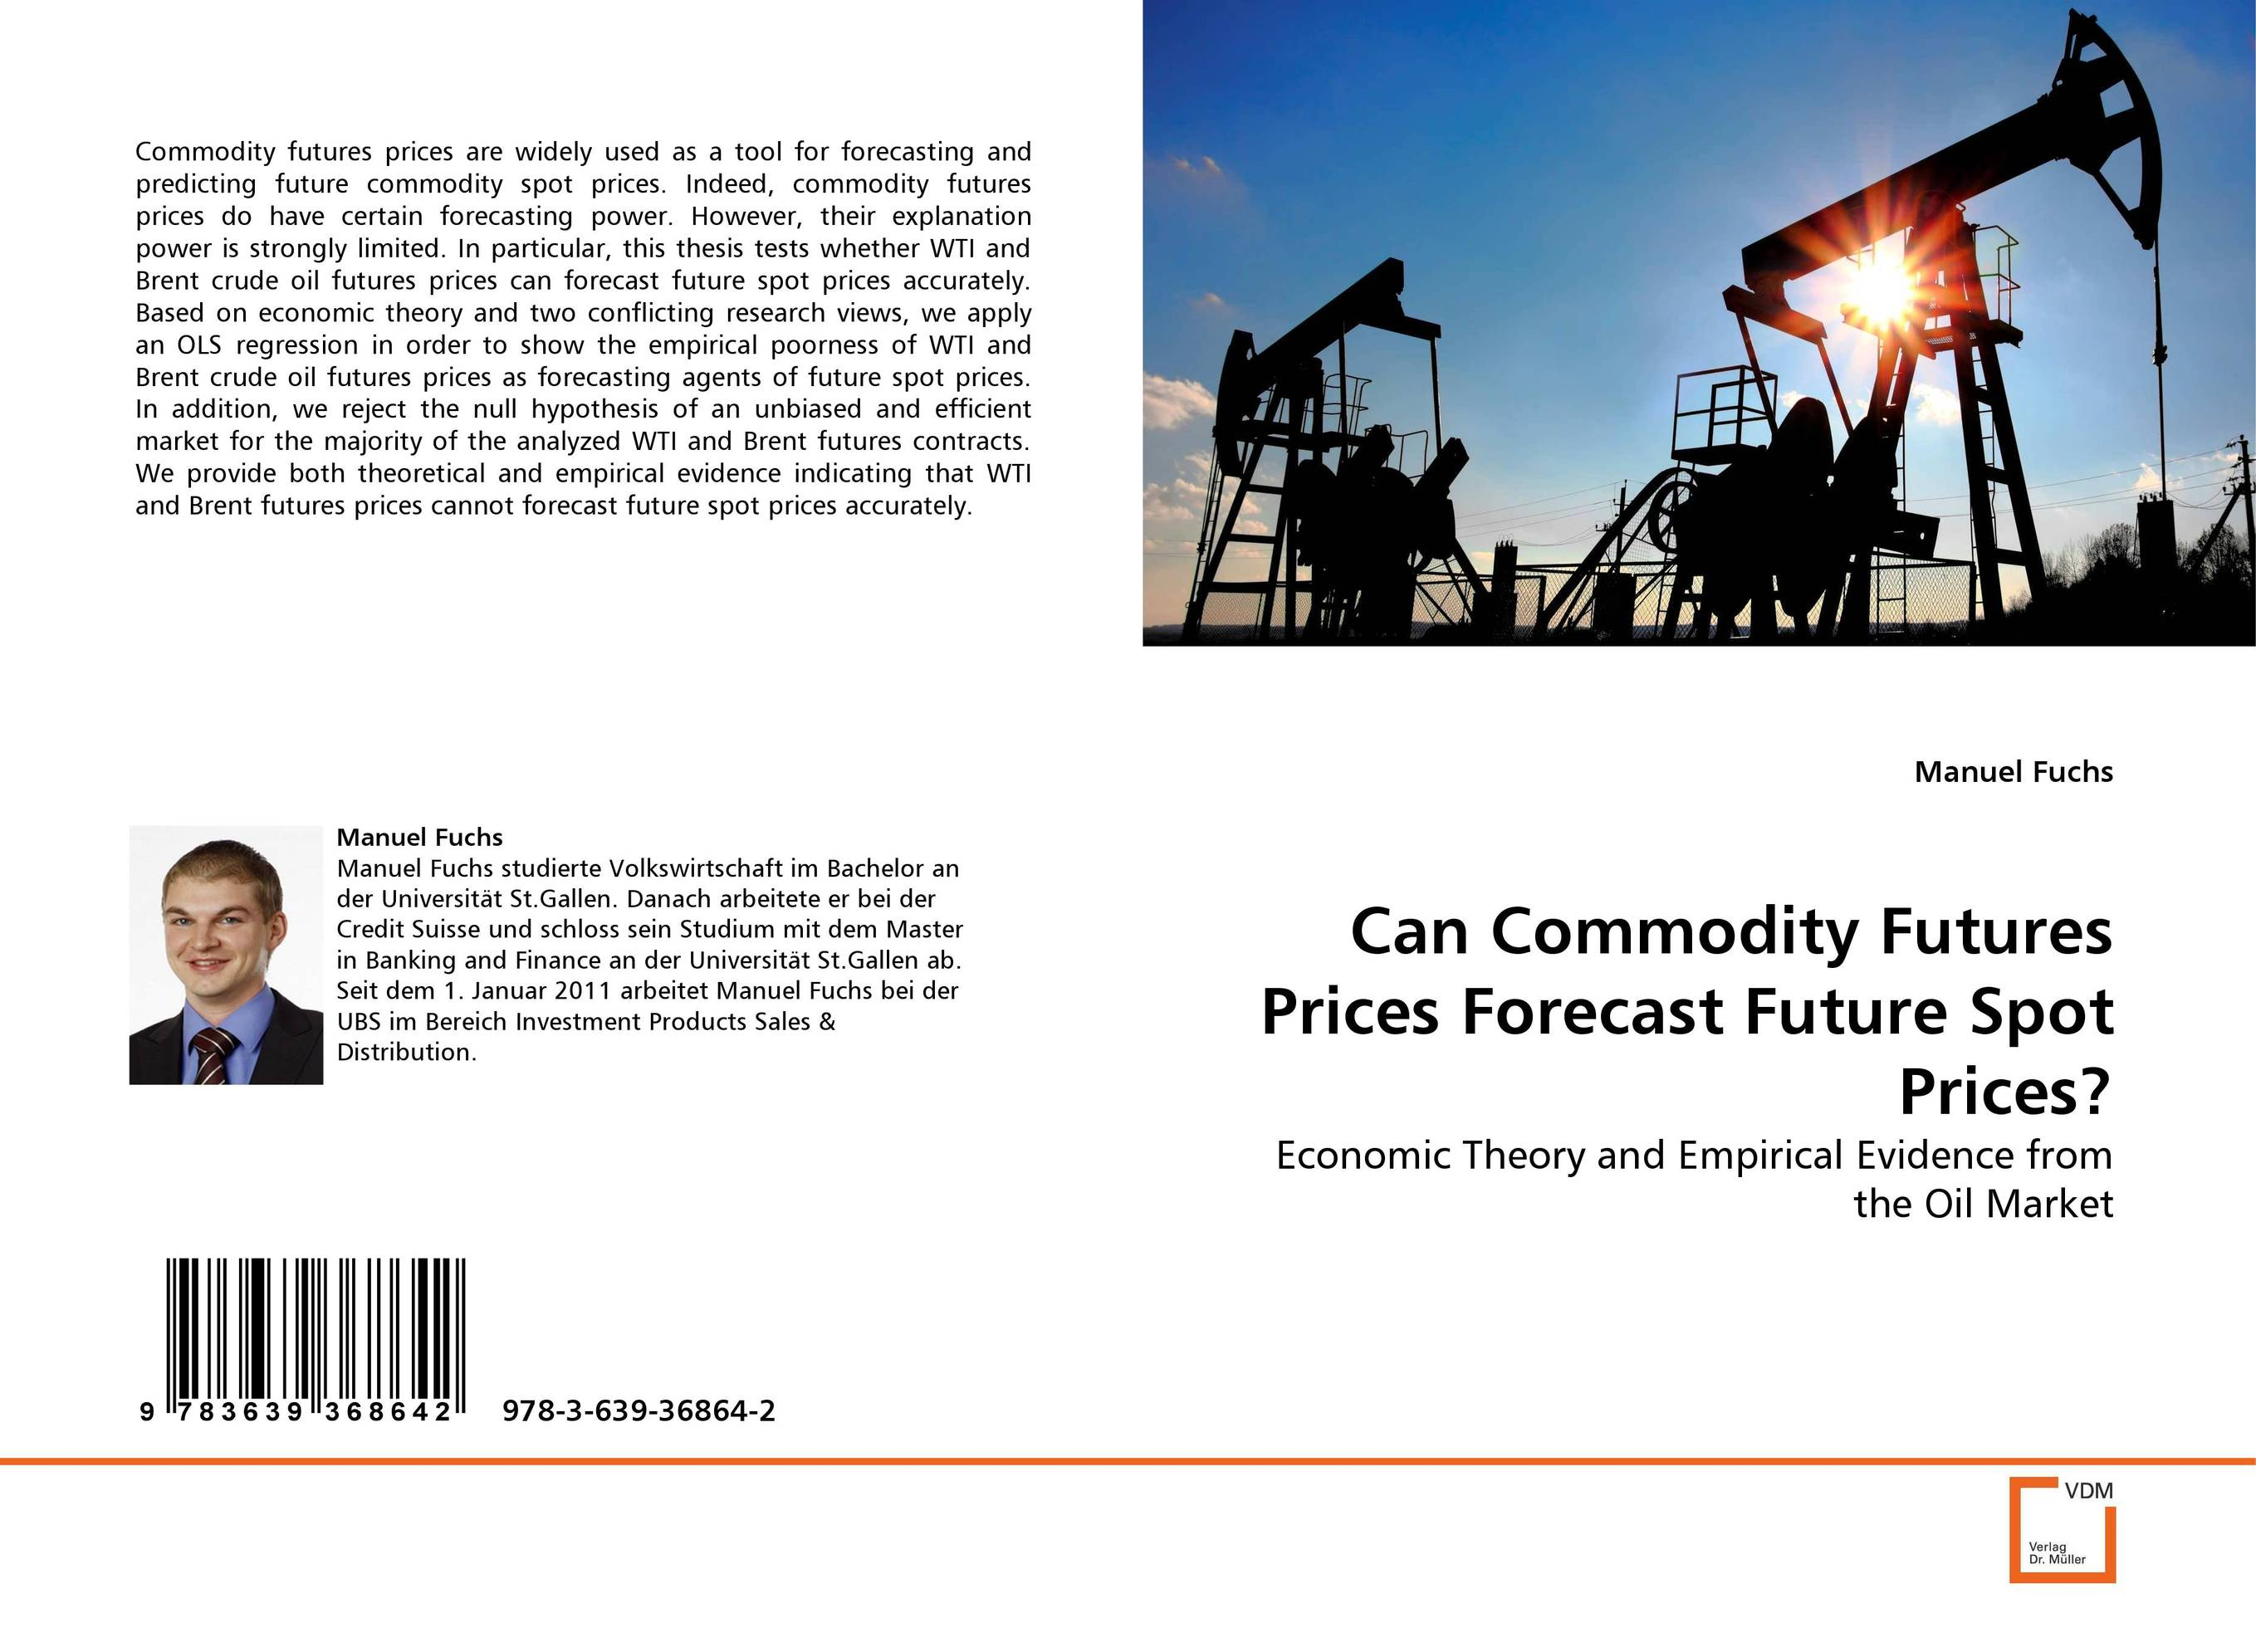 Can Commodity Futures Prices Forecast Future Spot Prices? dearomatization of crude oil